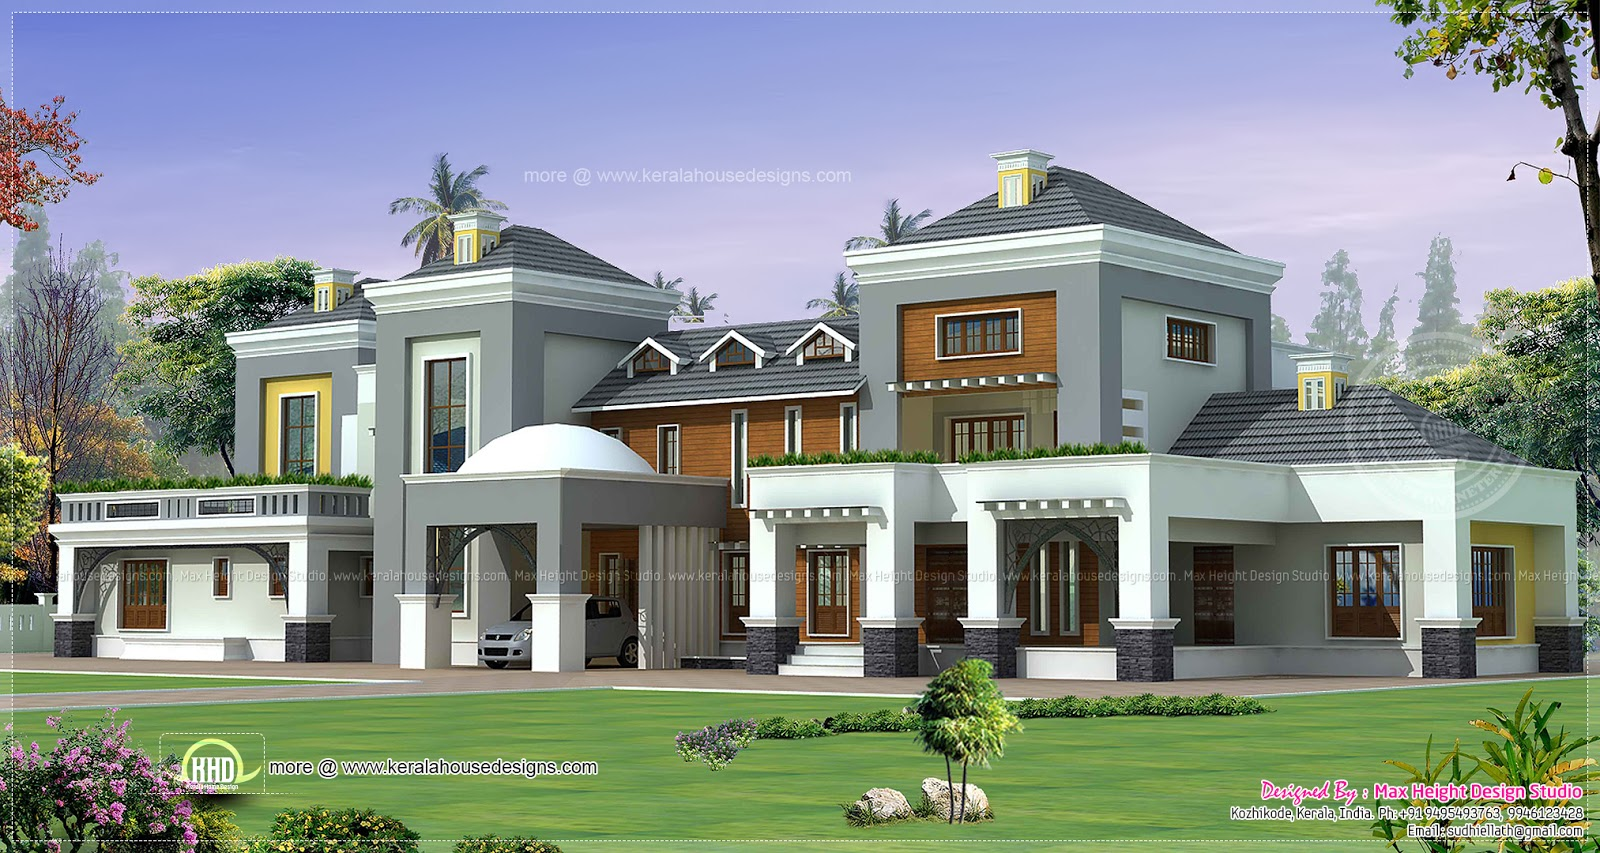 Luxury house plan with photo kerala home design and for Luxury home plans with photos